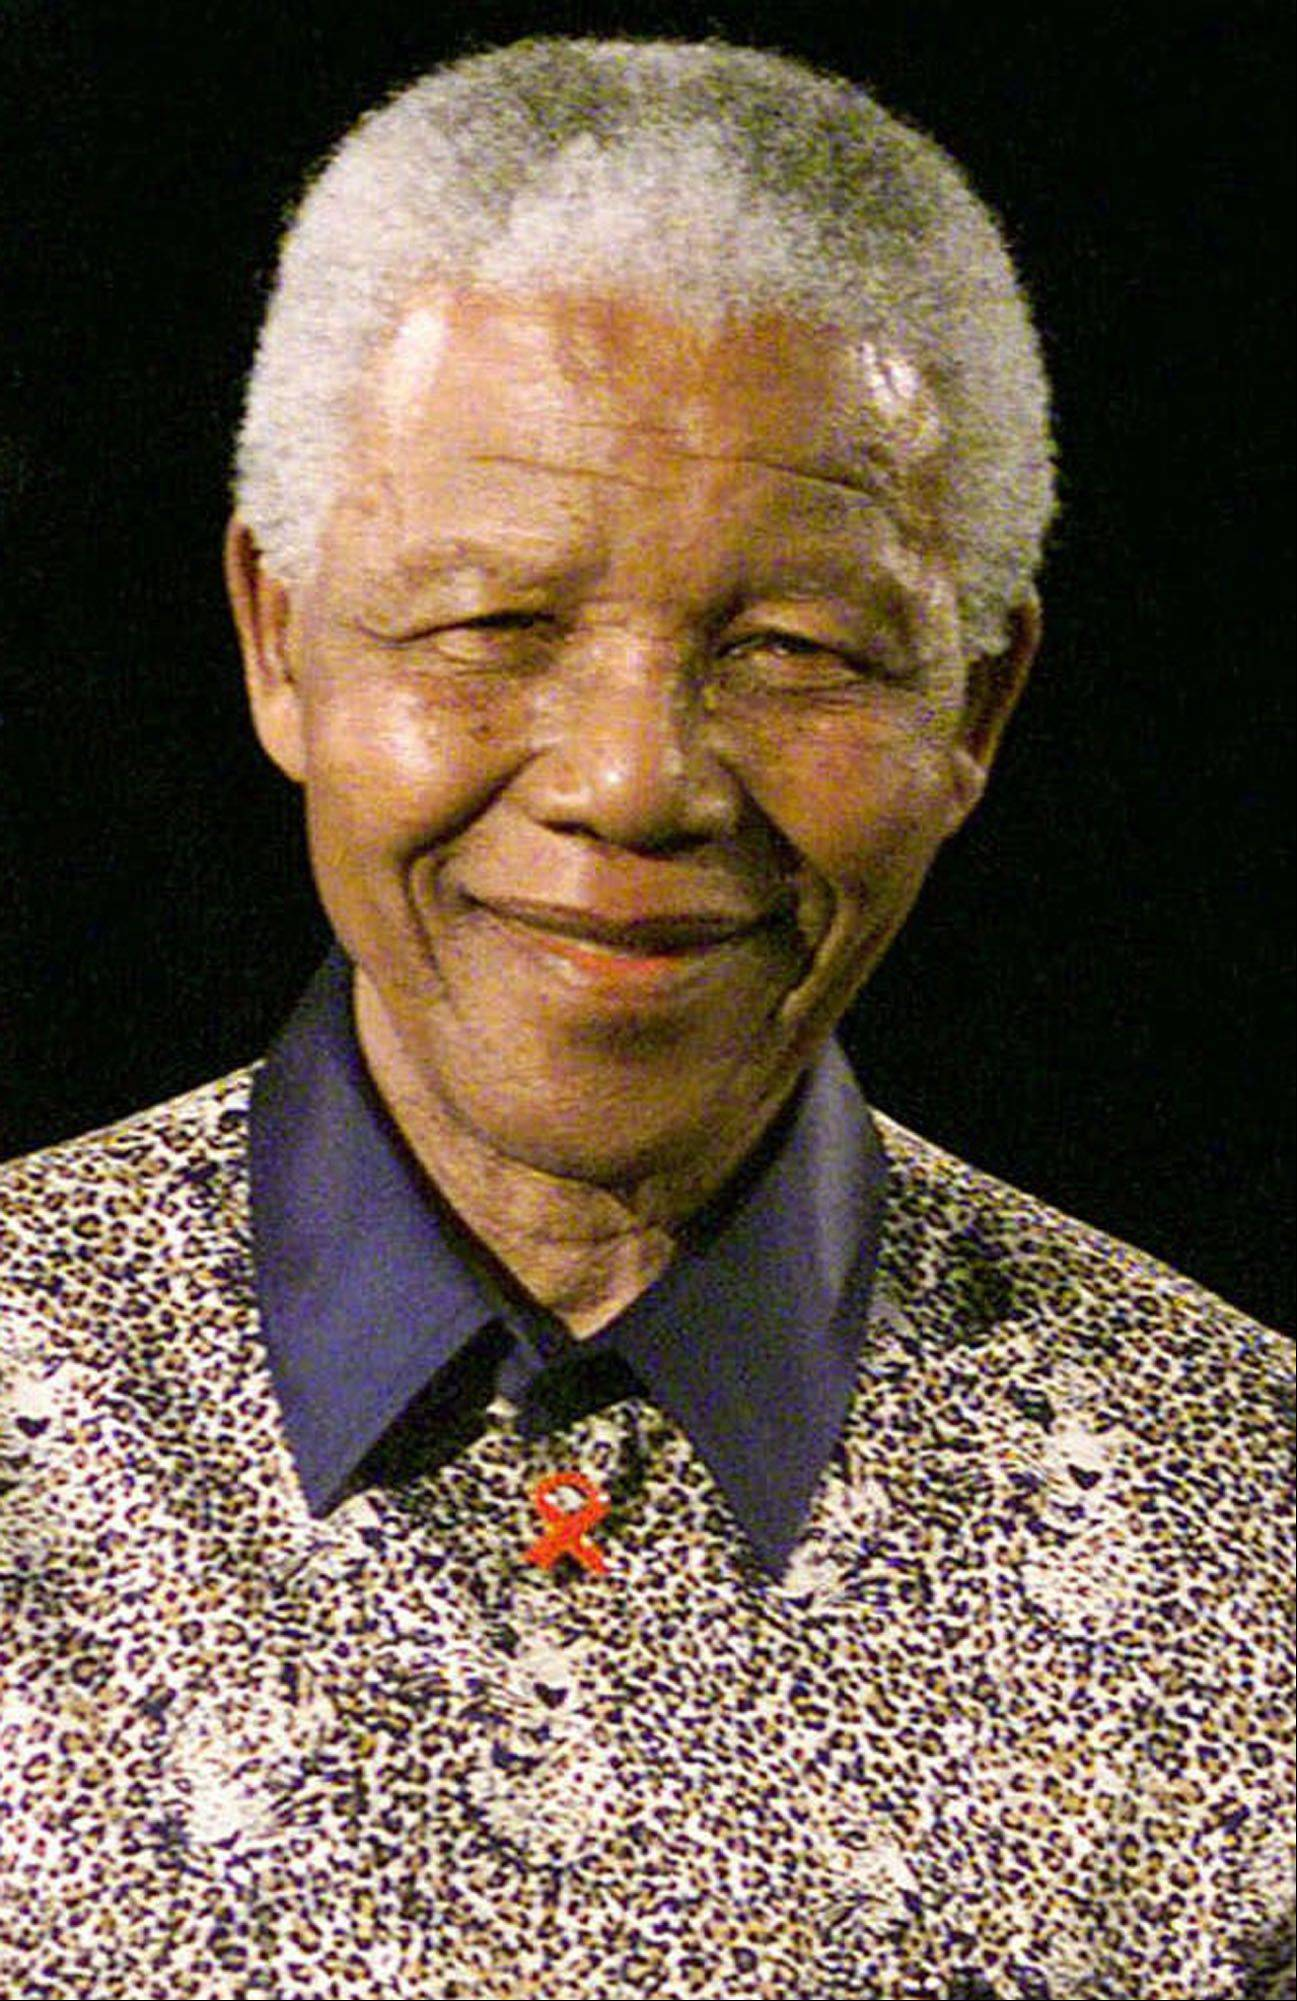 Former South African President and Nobel Peace Prize winner Nelson Mandela smiles during a forum at the University of Sydney in Sydney, Australia, in this Sept. 3, 2000, file photo.